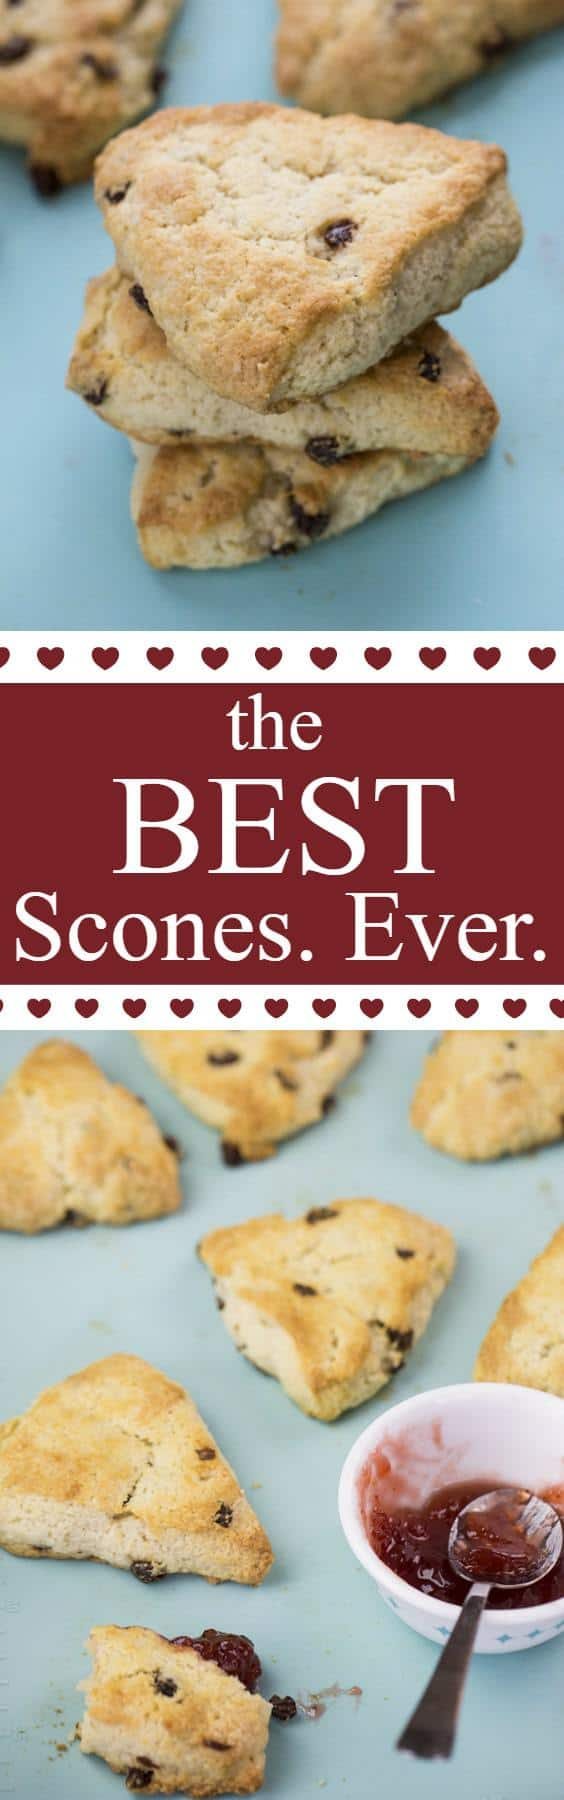 Scone Recipe: The Best Scones Ever! From @kitchenmagpie. Crispy, perfect scones!